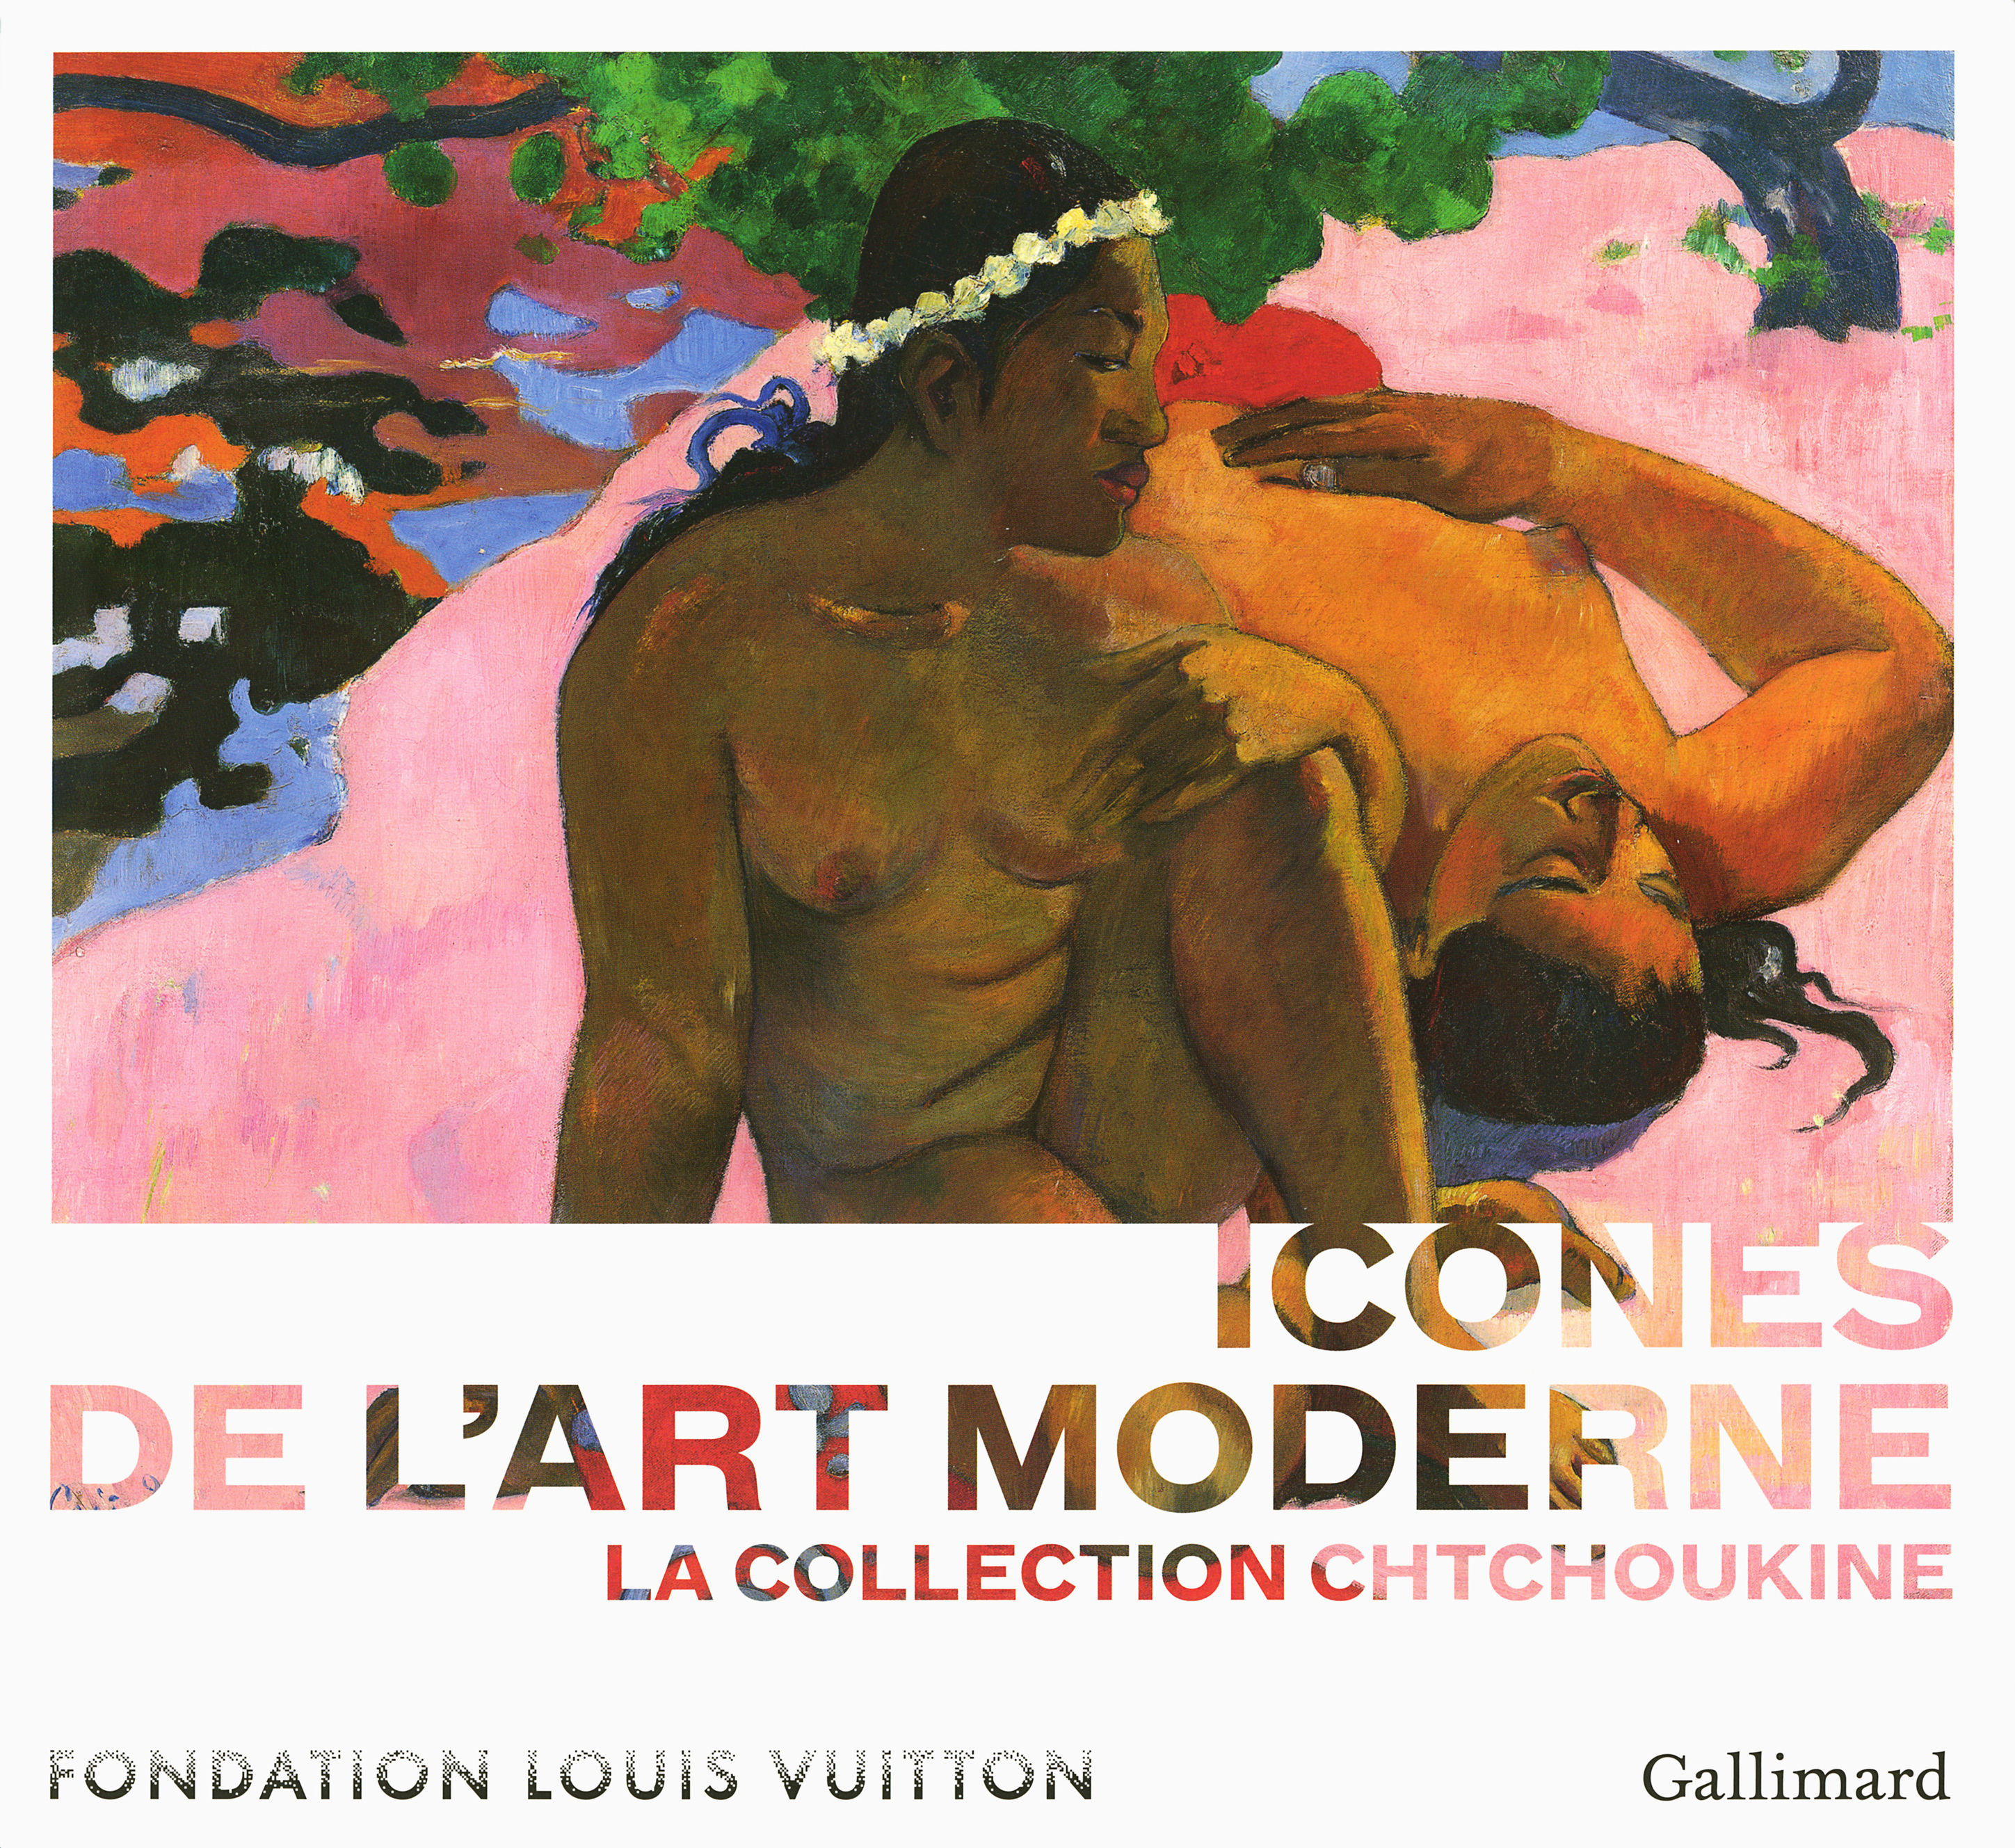 ICONES DE L'ART MODERNE, LA COLLECTION CHTCHOUKINE (NOUVELLE EDITION BROCHEE)